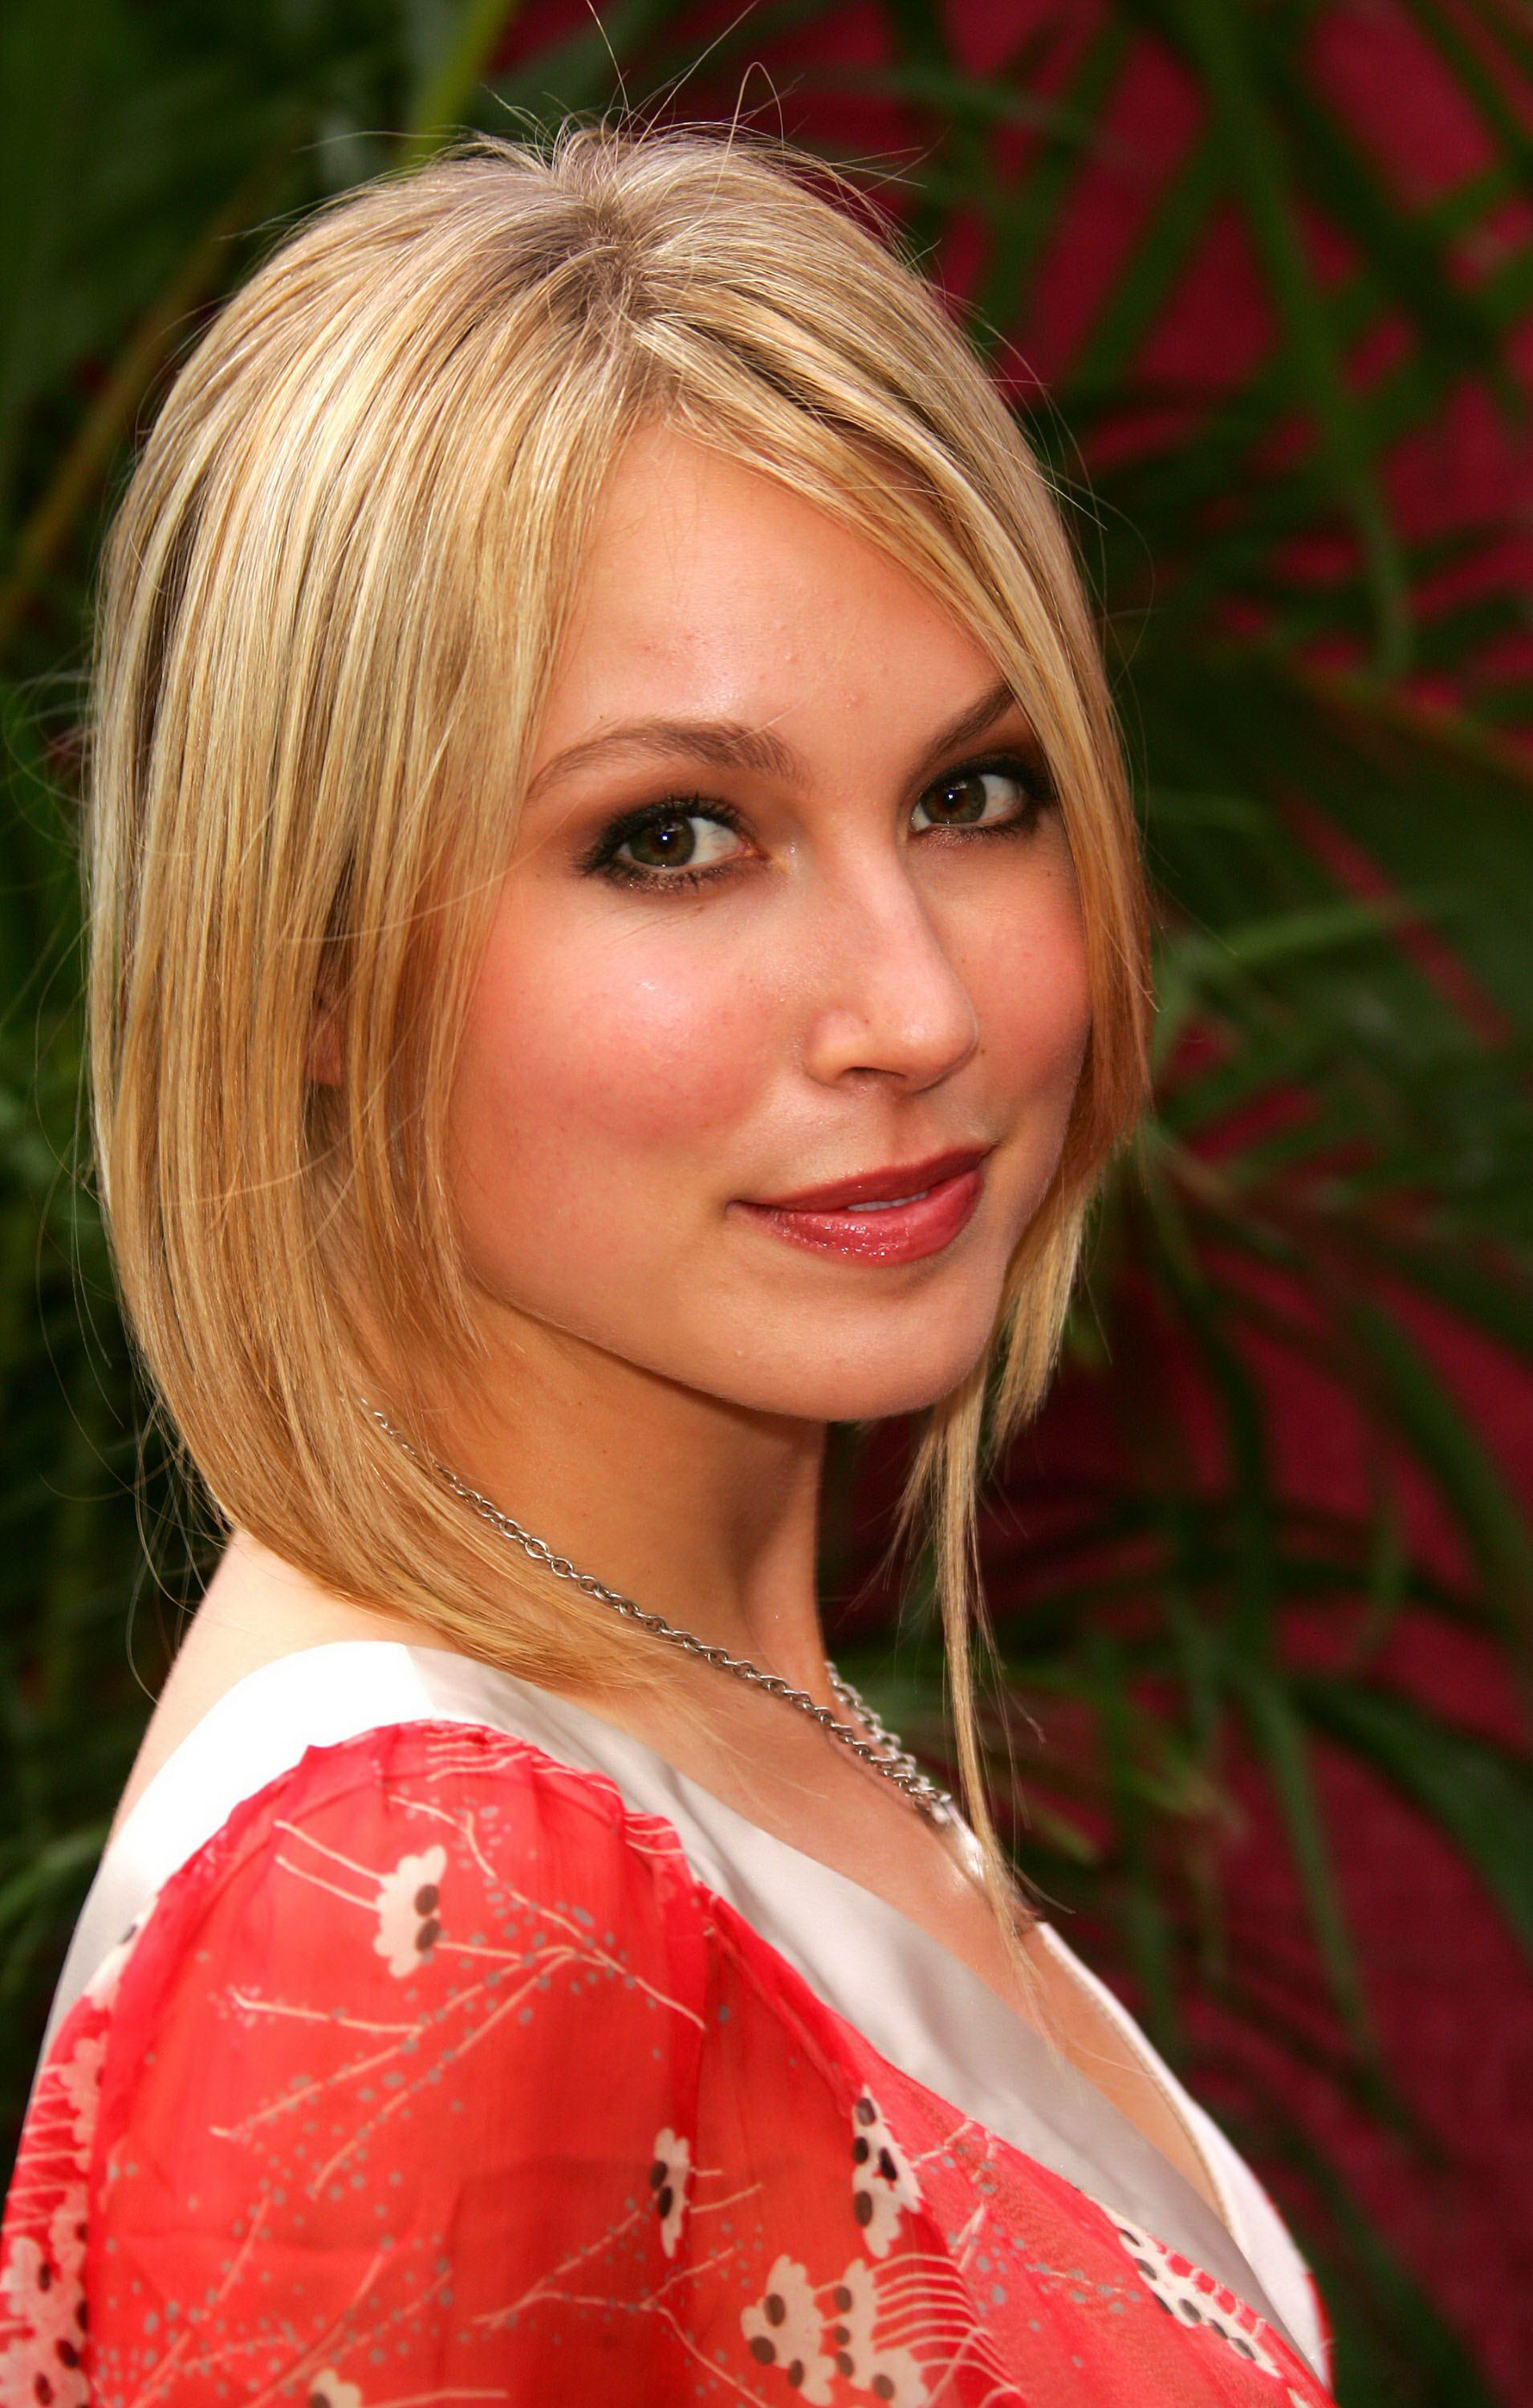 Sarah carter nude actress